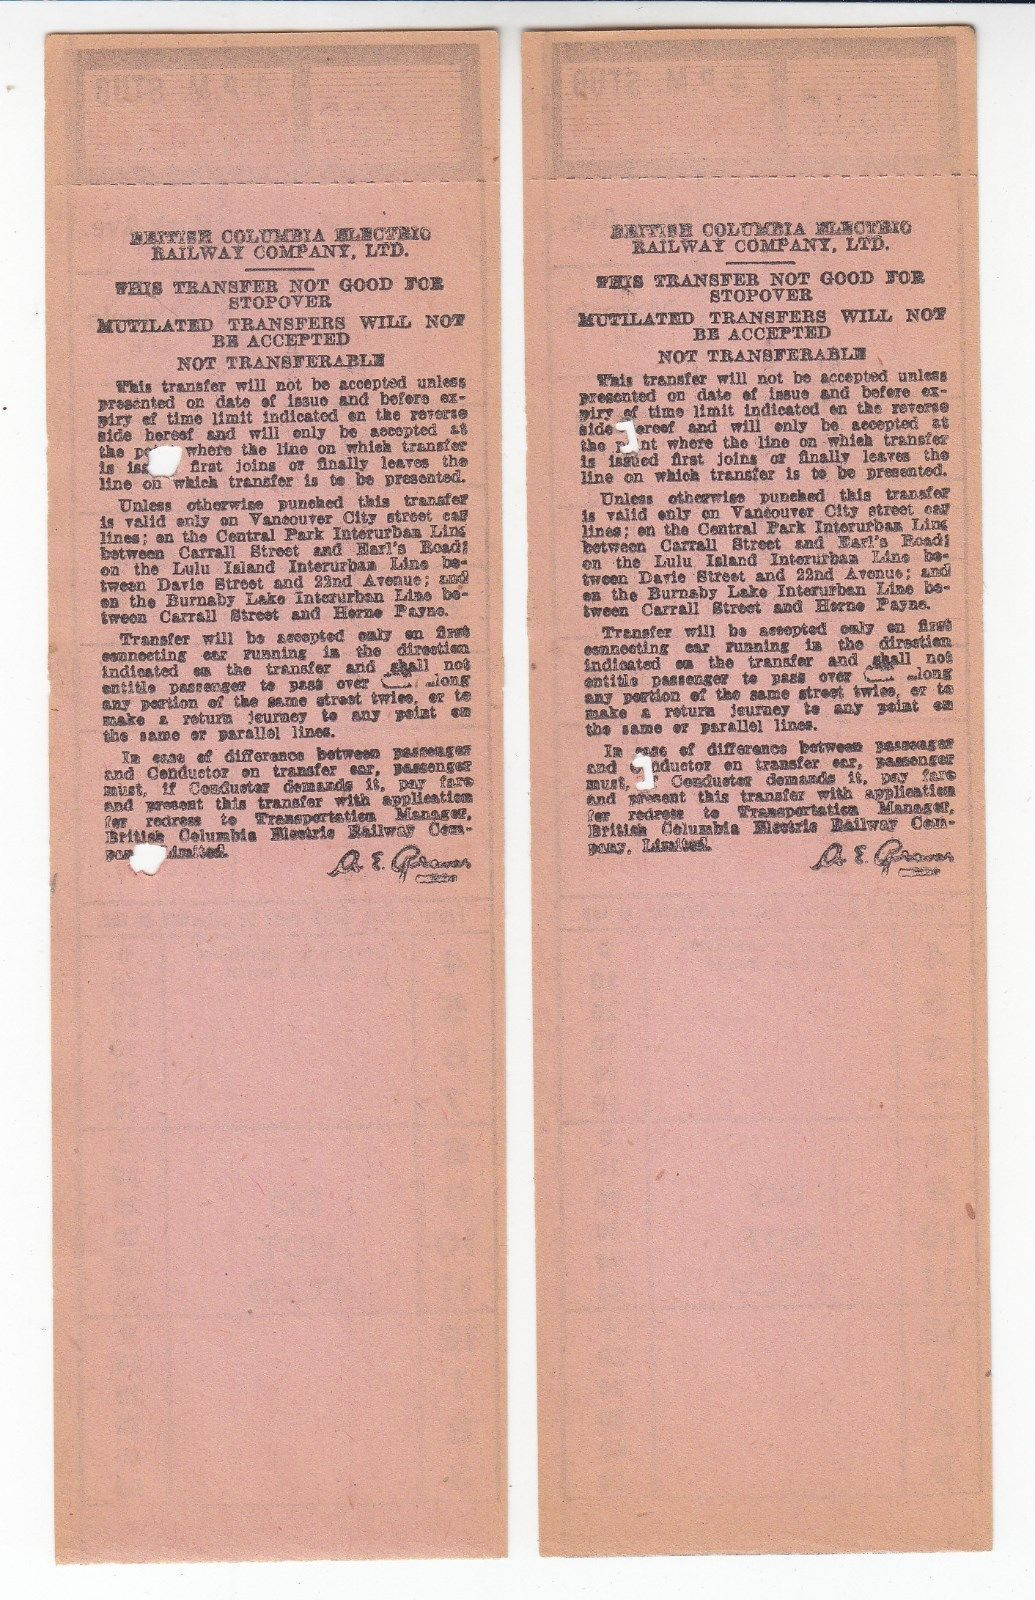 Backs of transfers from British Columbia (Canada) Electric Rwy. Ltd. (Vancouver and vicinity) (date unknown)